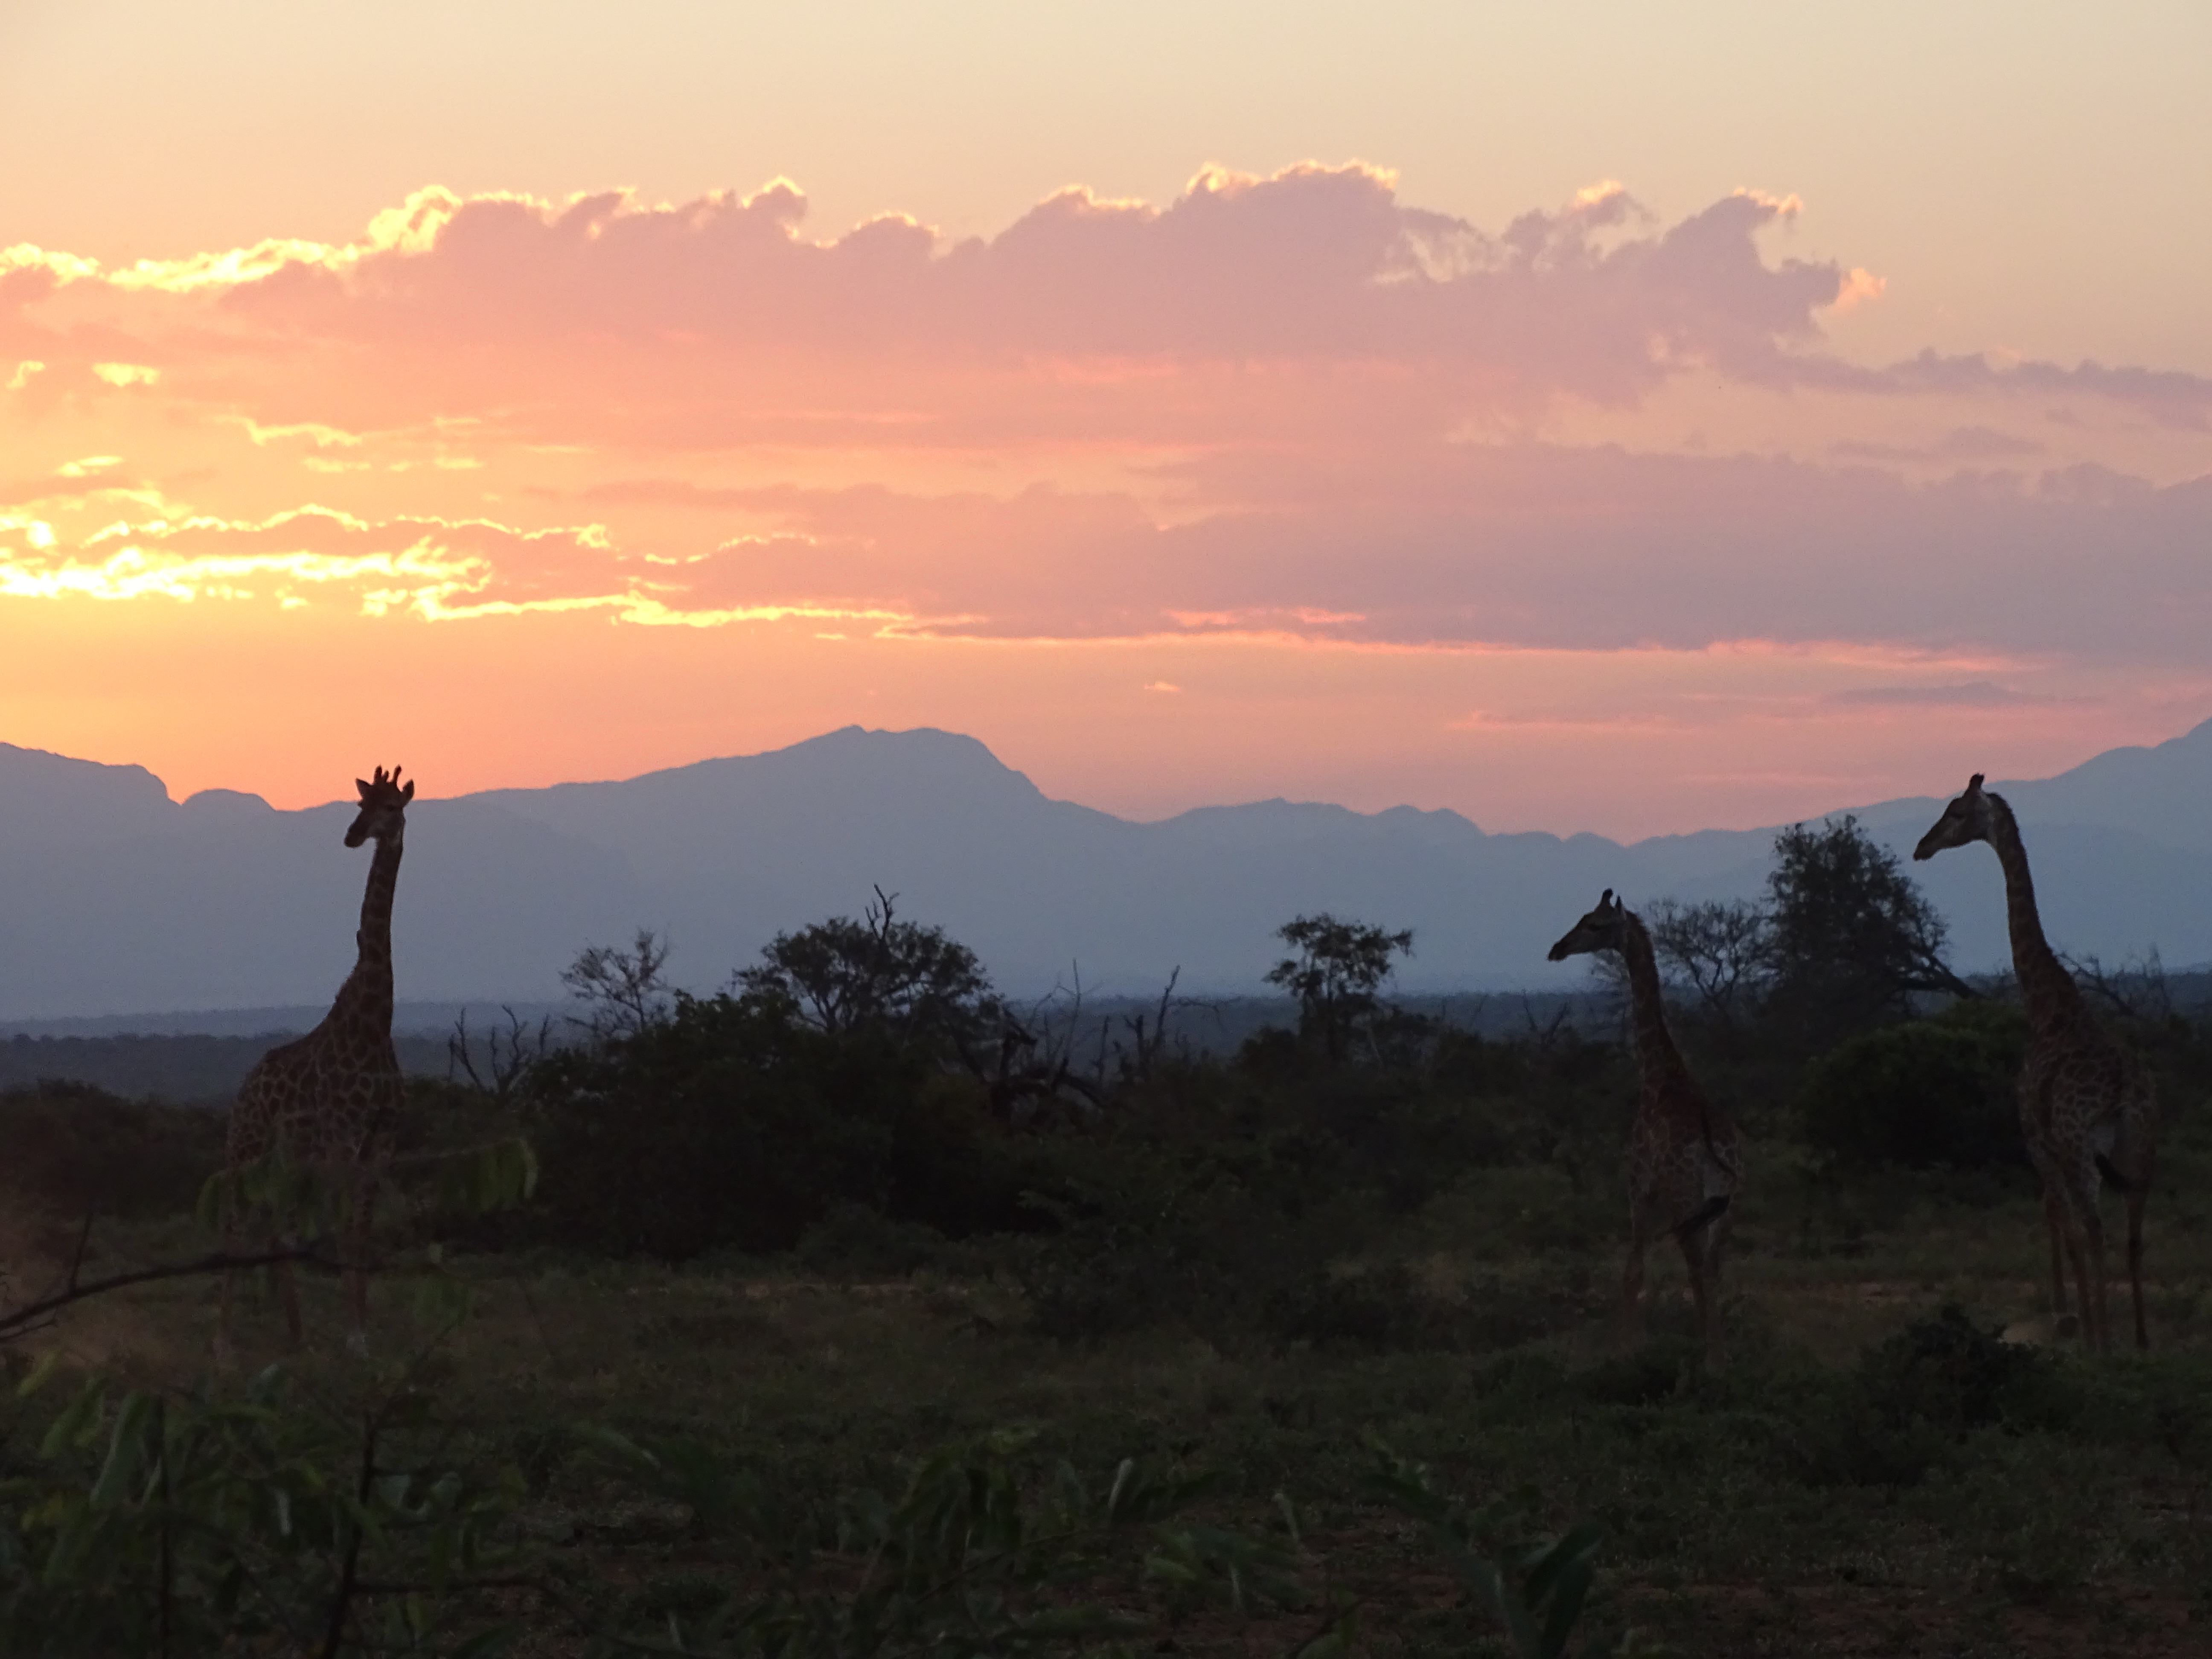 Semester 3 - Week 2 - 27/03/2017 - Game Drive - Sunset And Giraffes 4